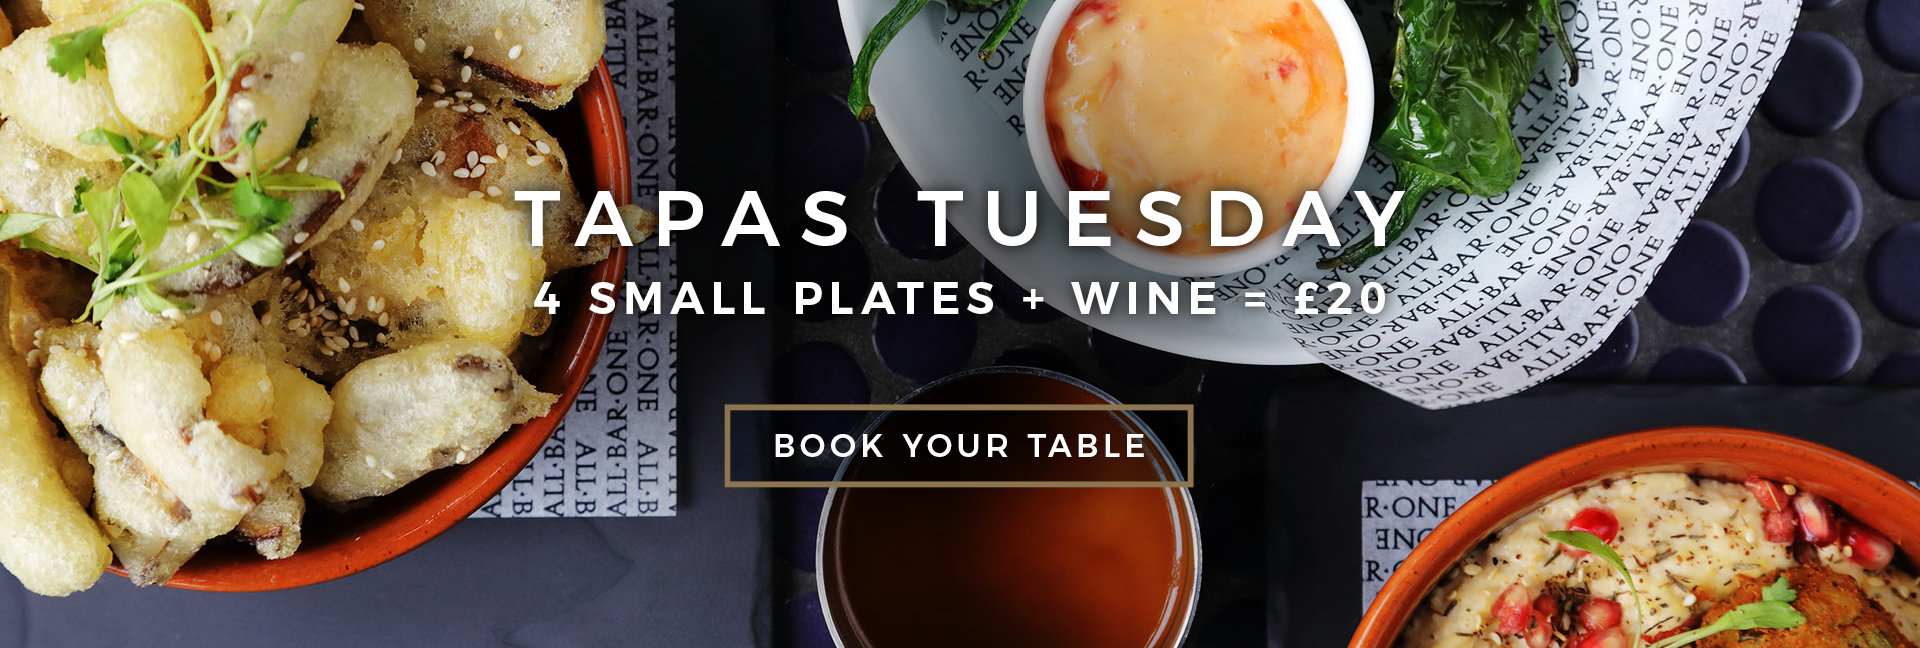 Tapas Tuesday at All Bar One Kingsway - Book now